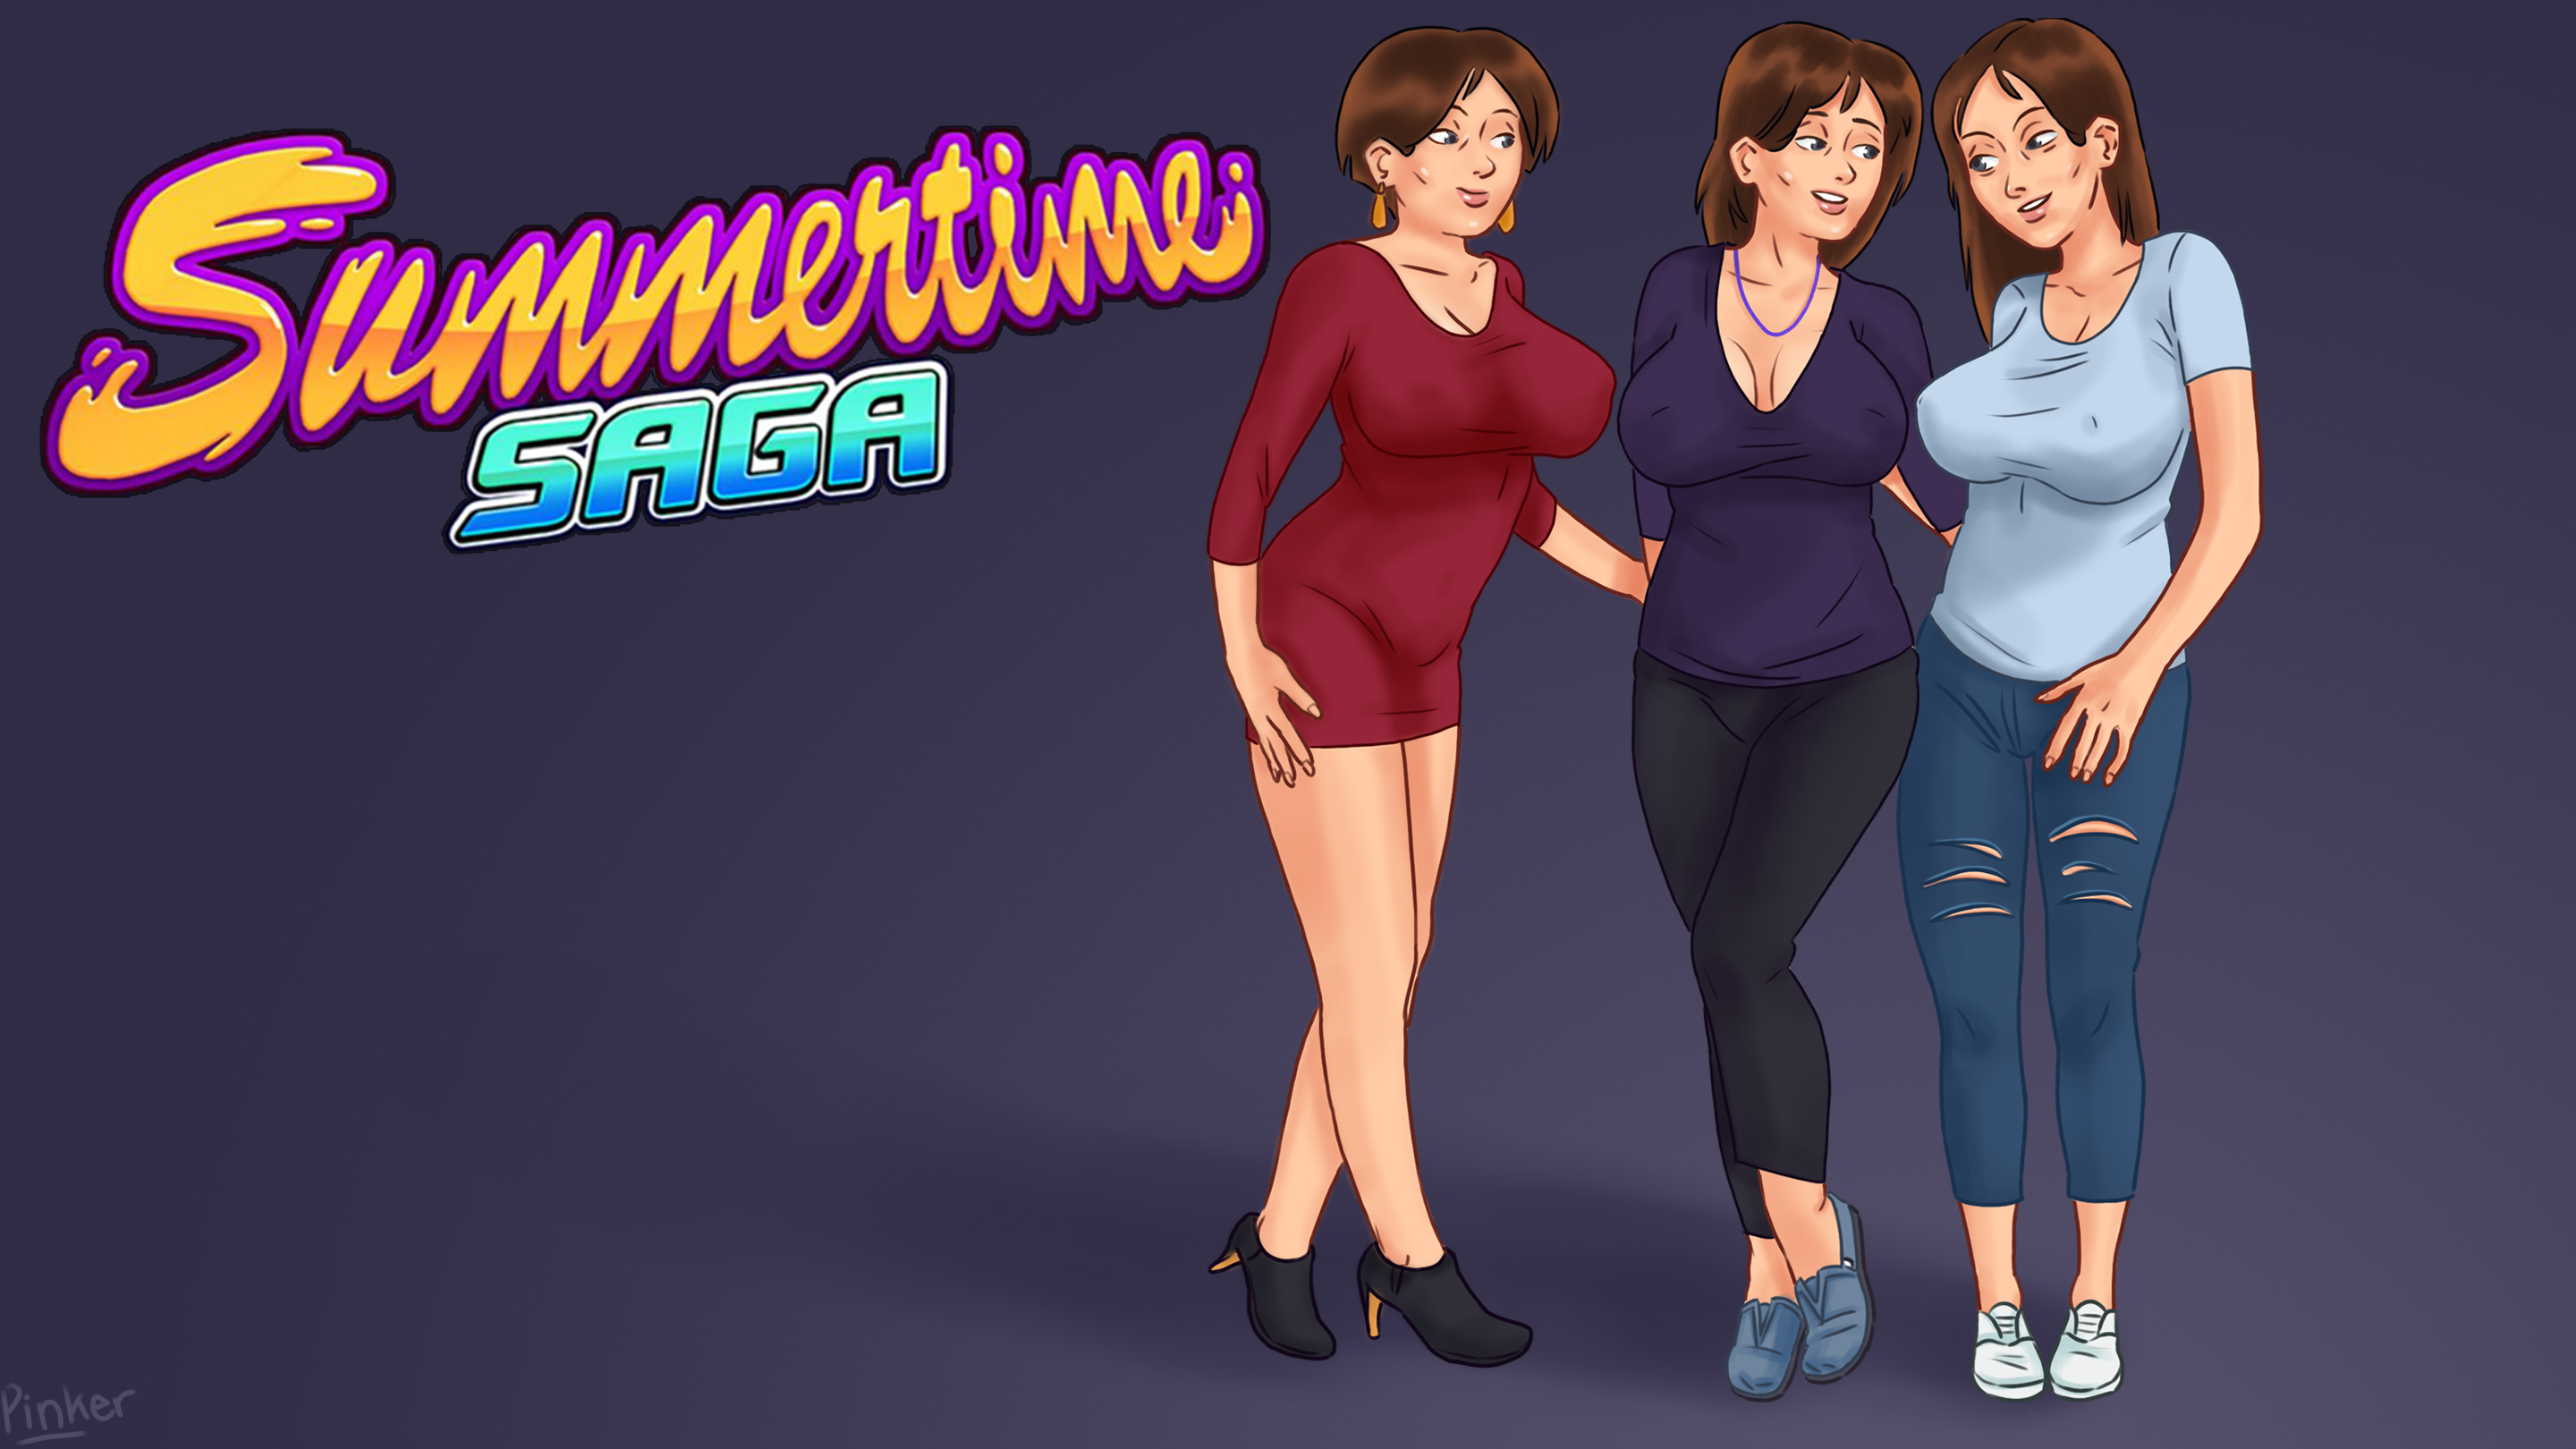 games like summertime saga